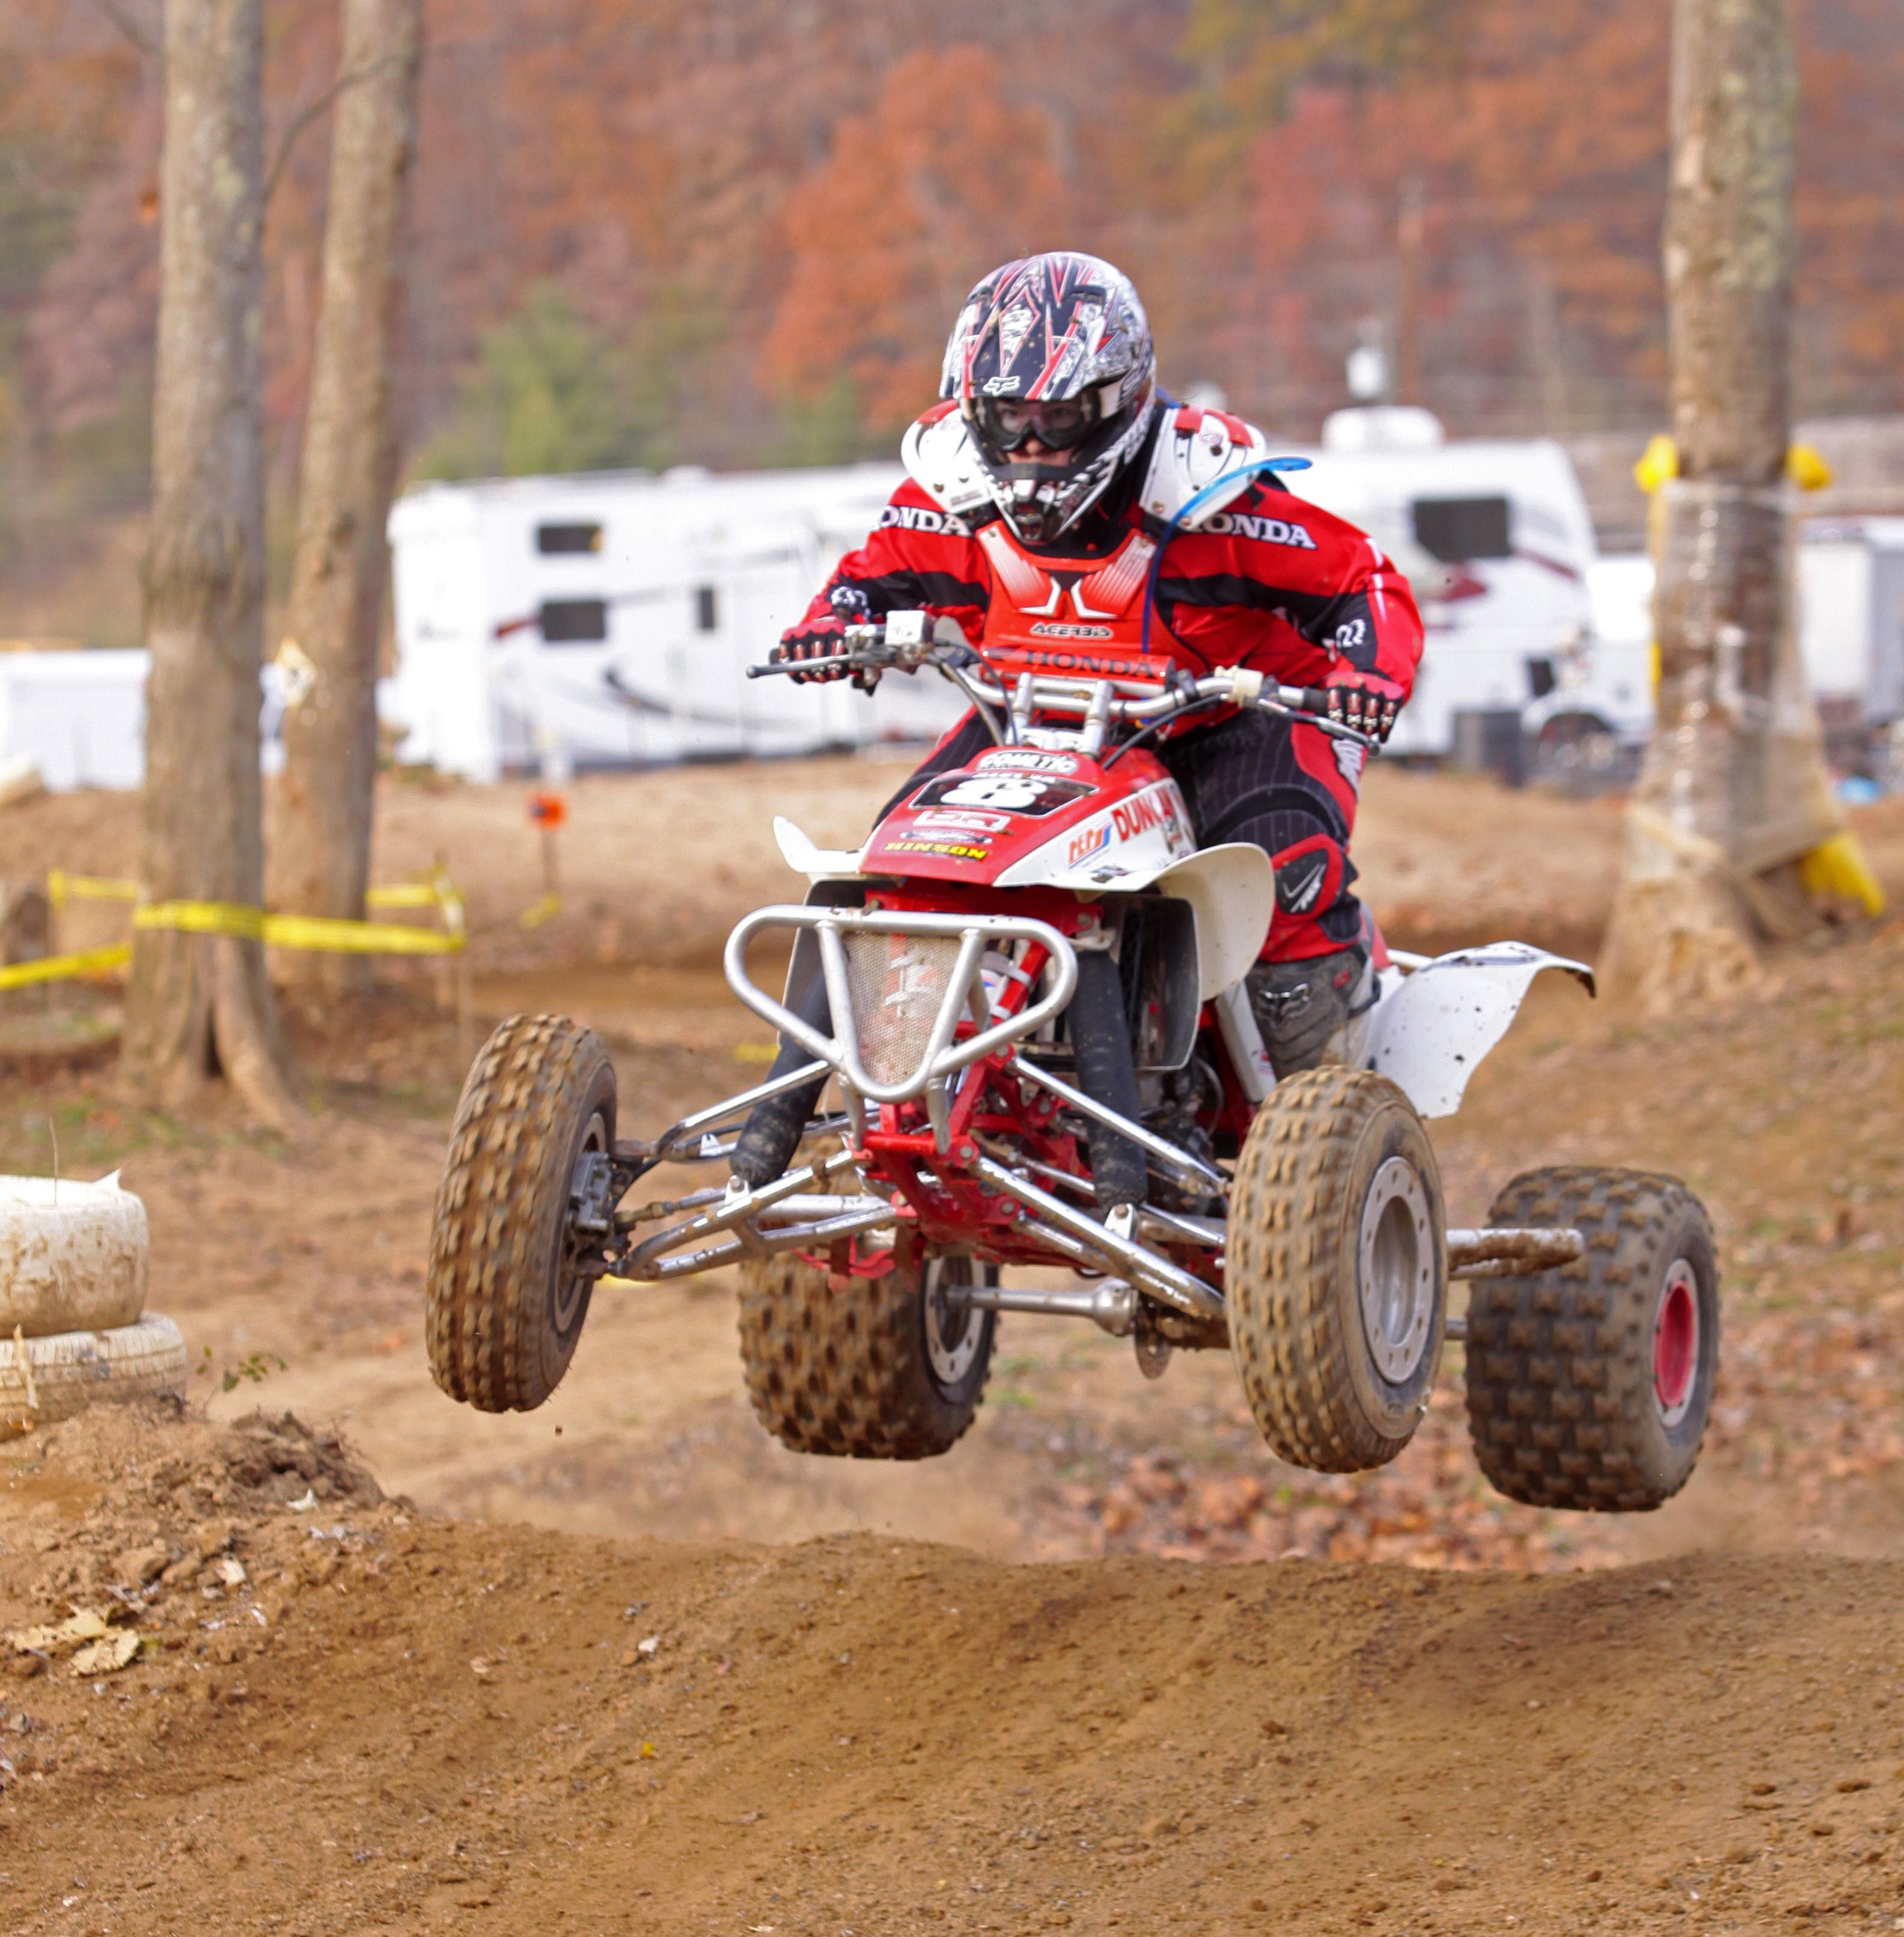 The 88 Trx 250r My First Race Quad When 2 Strokes Ruled The Track